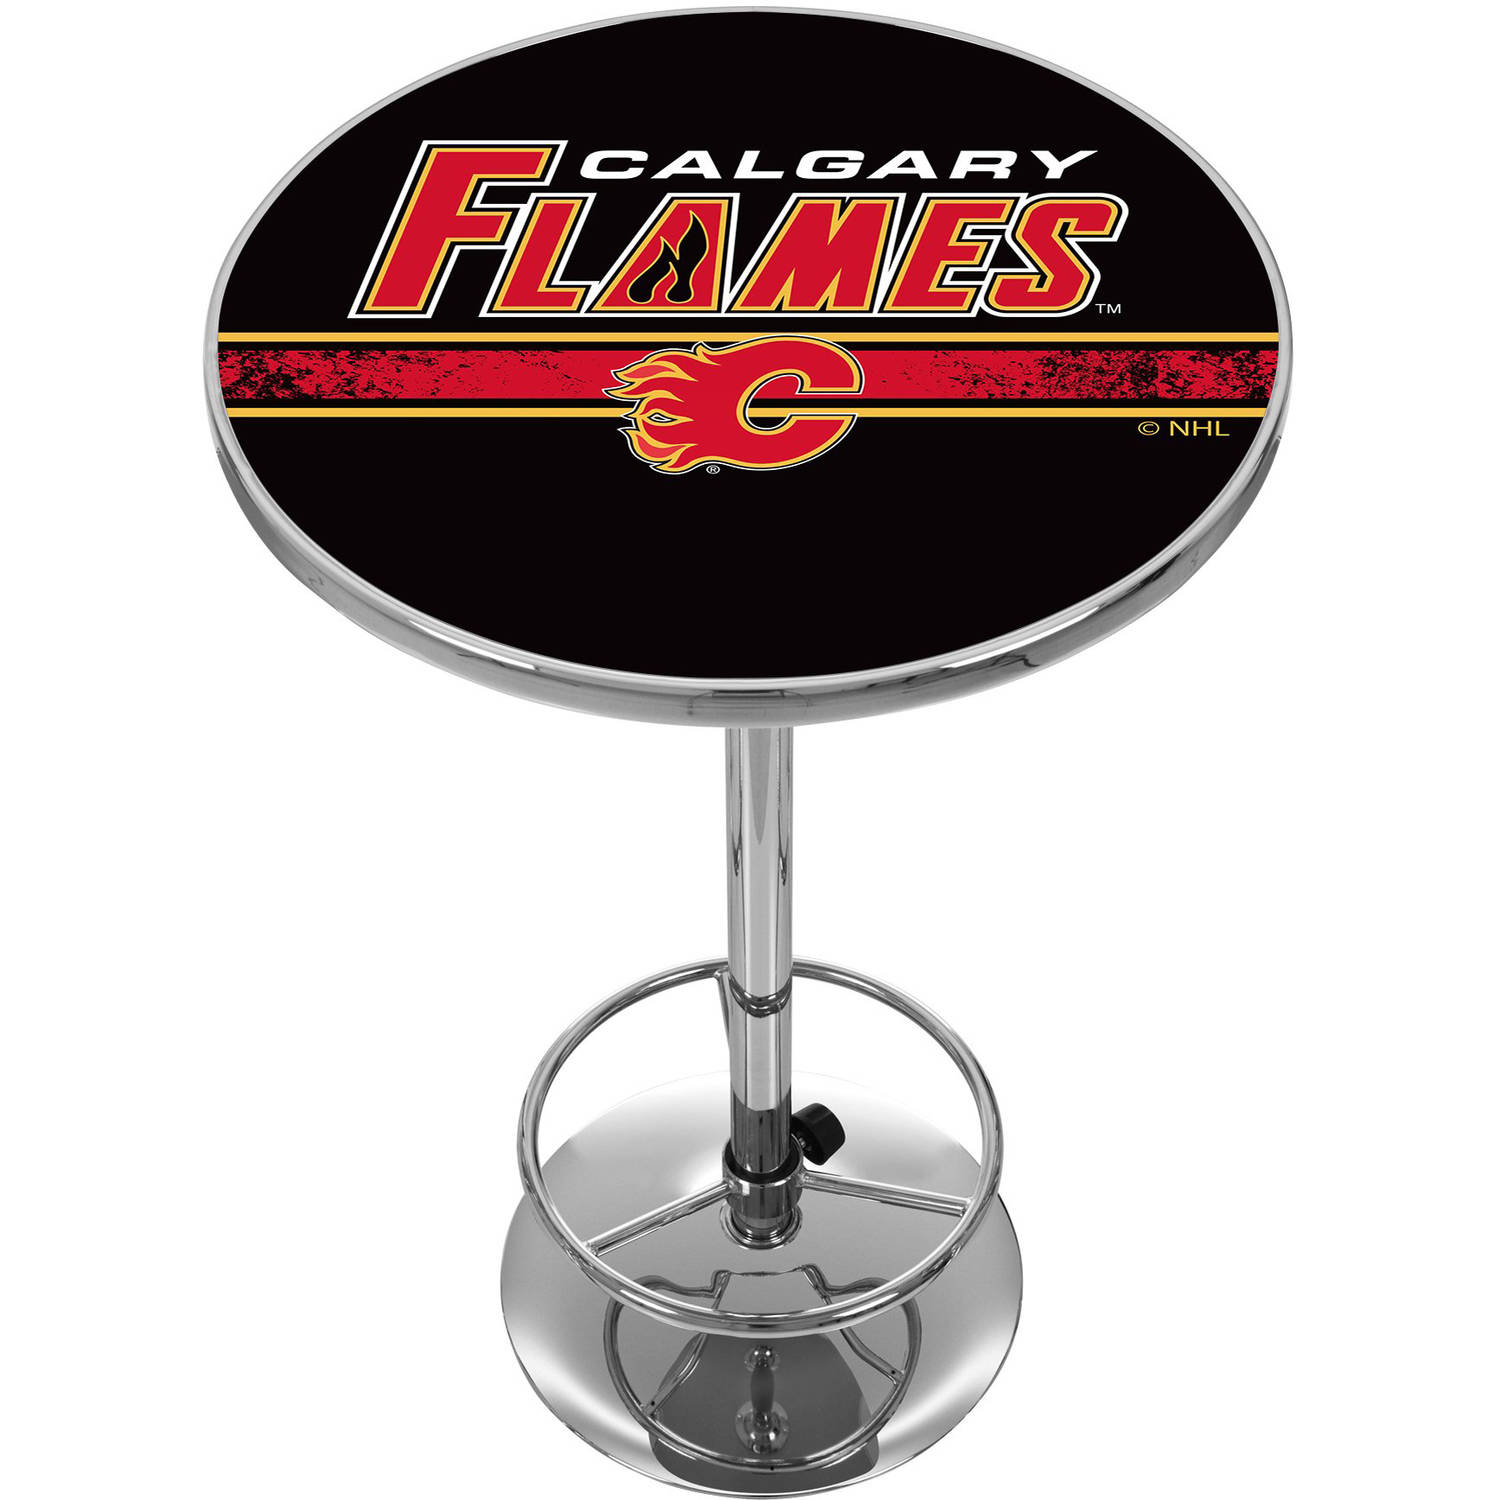 NHL Chrome Pub Table, Calgary Flames